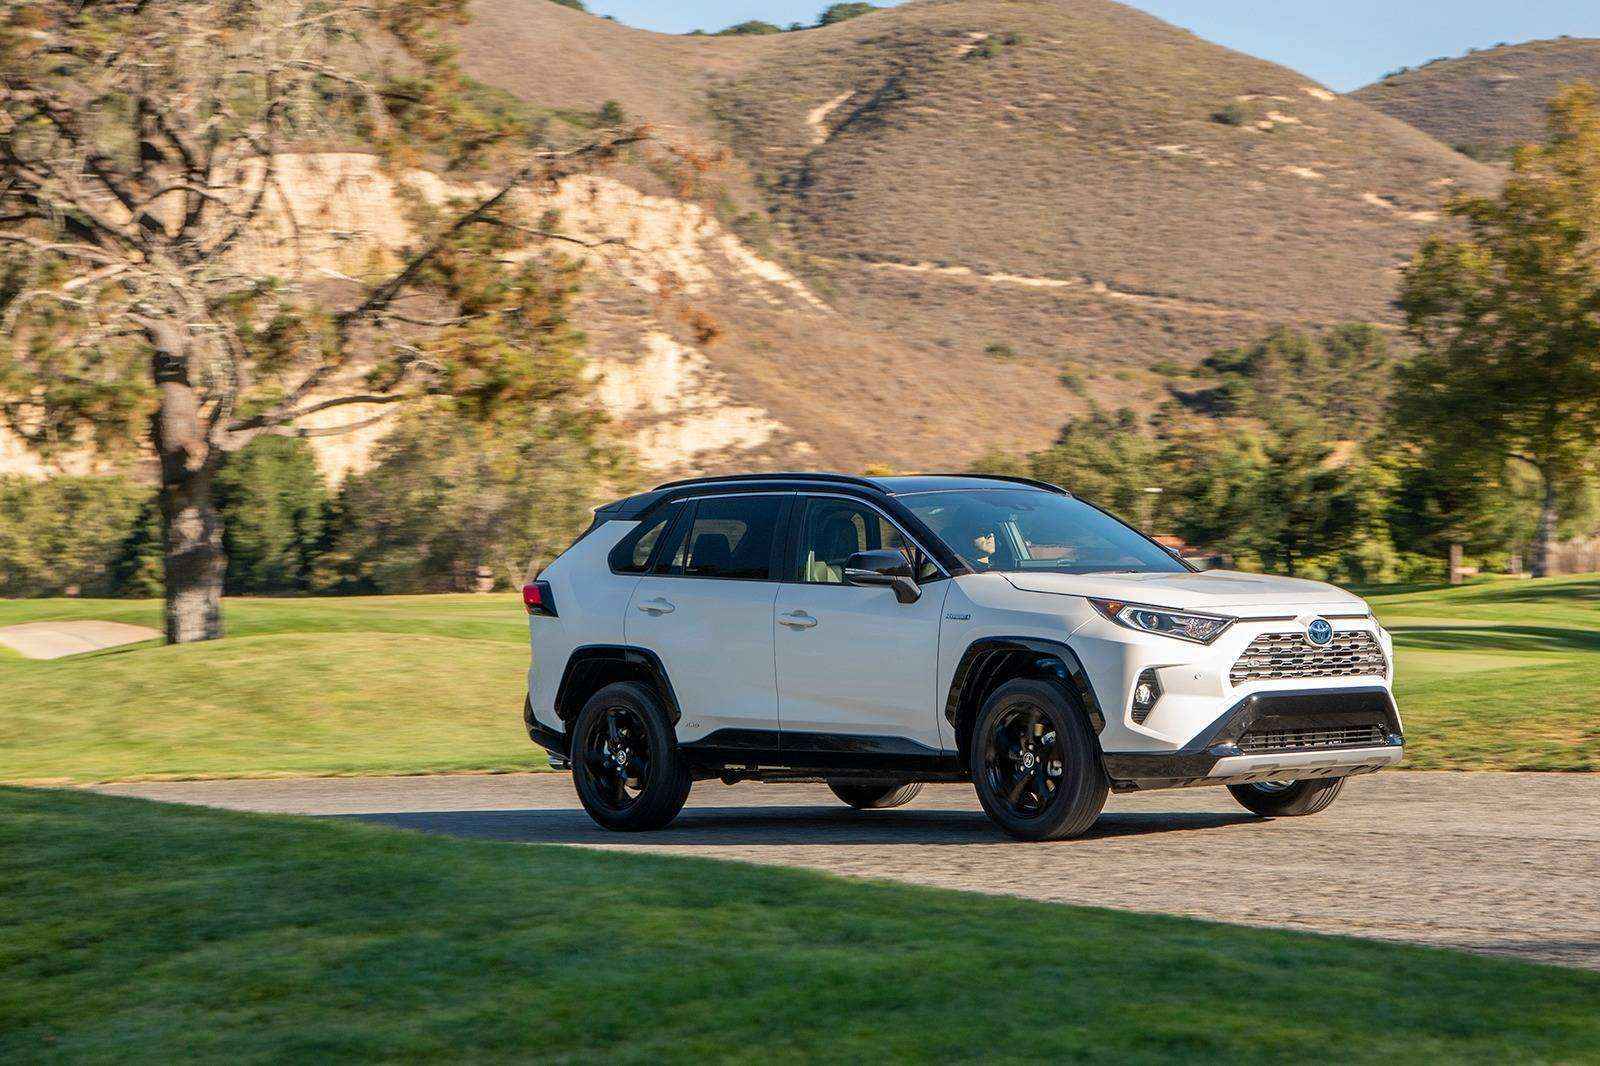 91 Best Review 2019 Toyota Rav4 Hybrid Specs Performance and New Engine by 2019 Toyota Rav4 Hybrid Specs